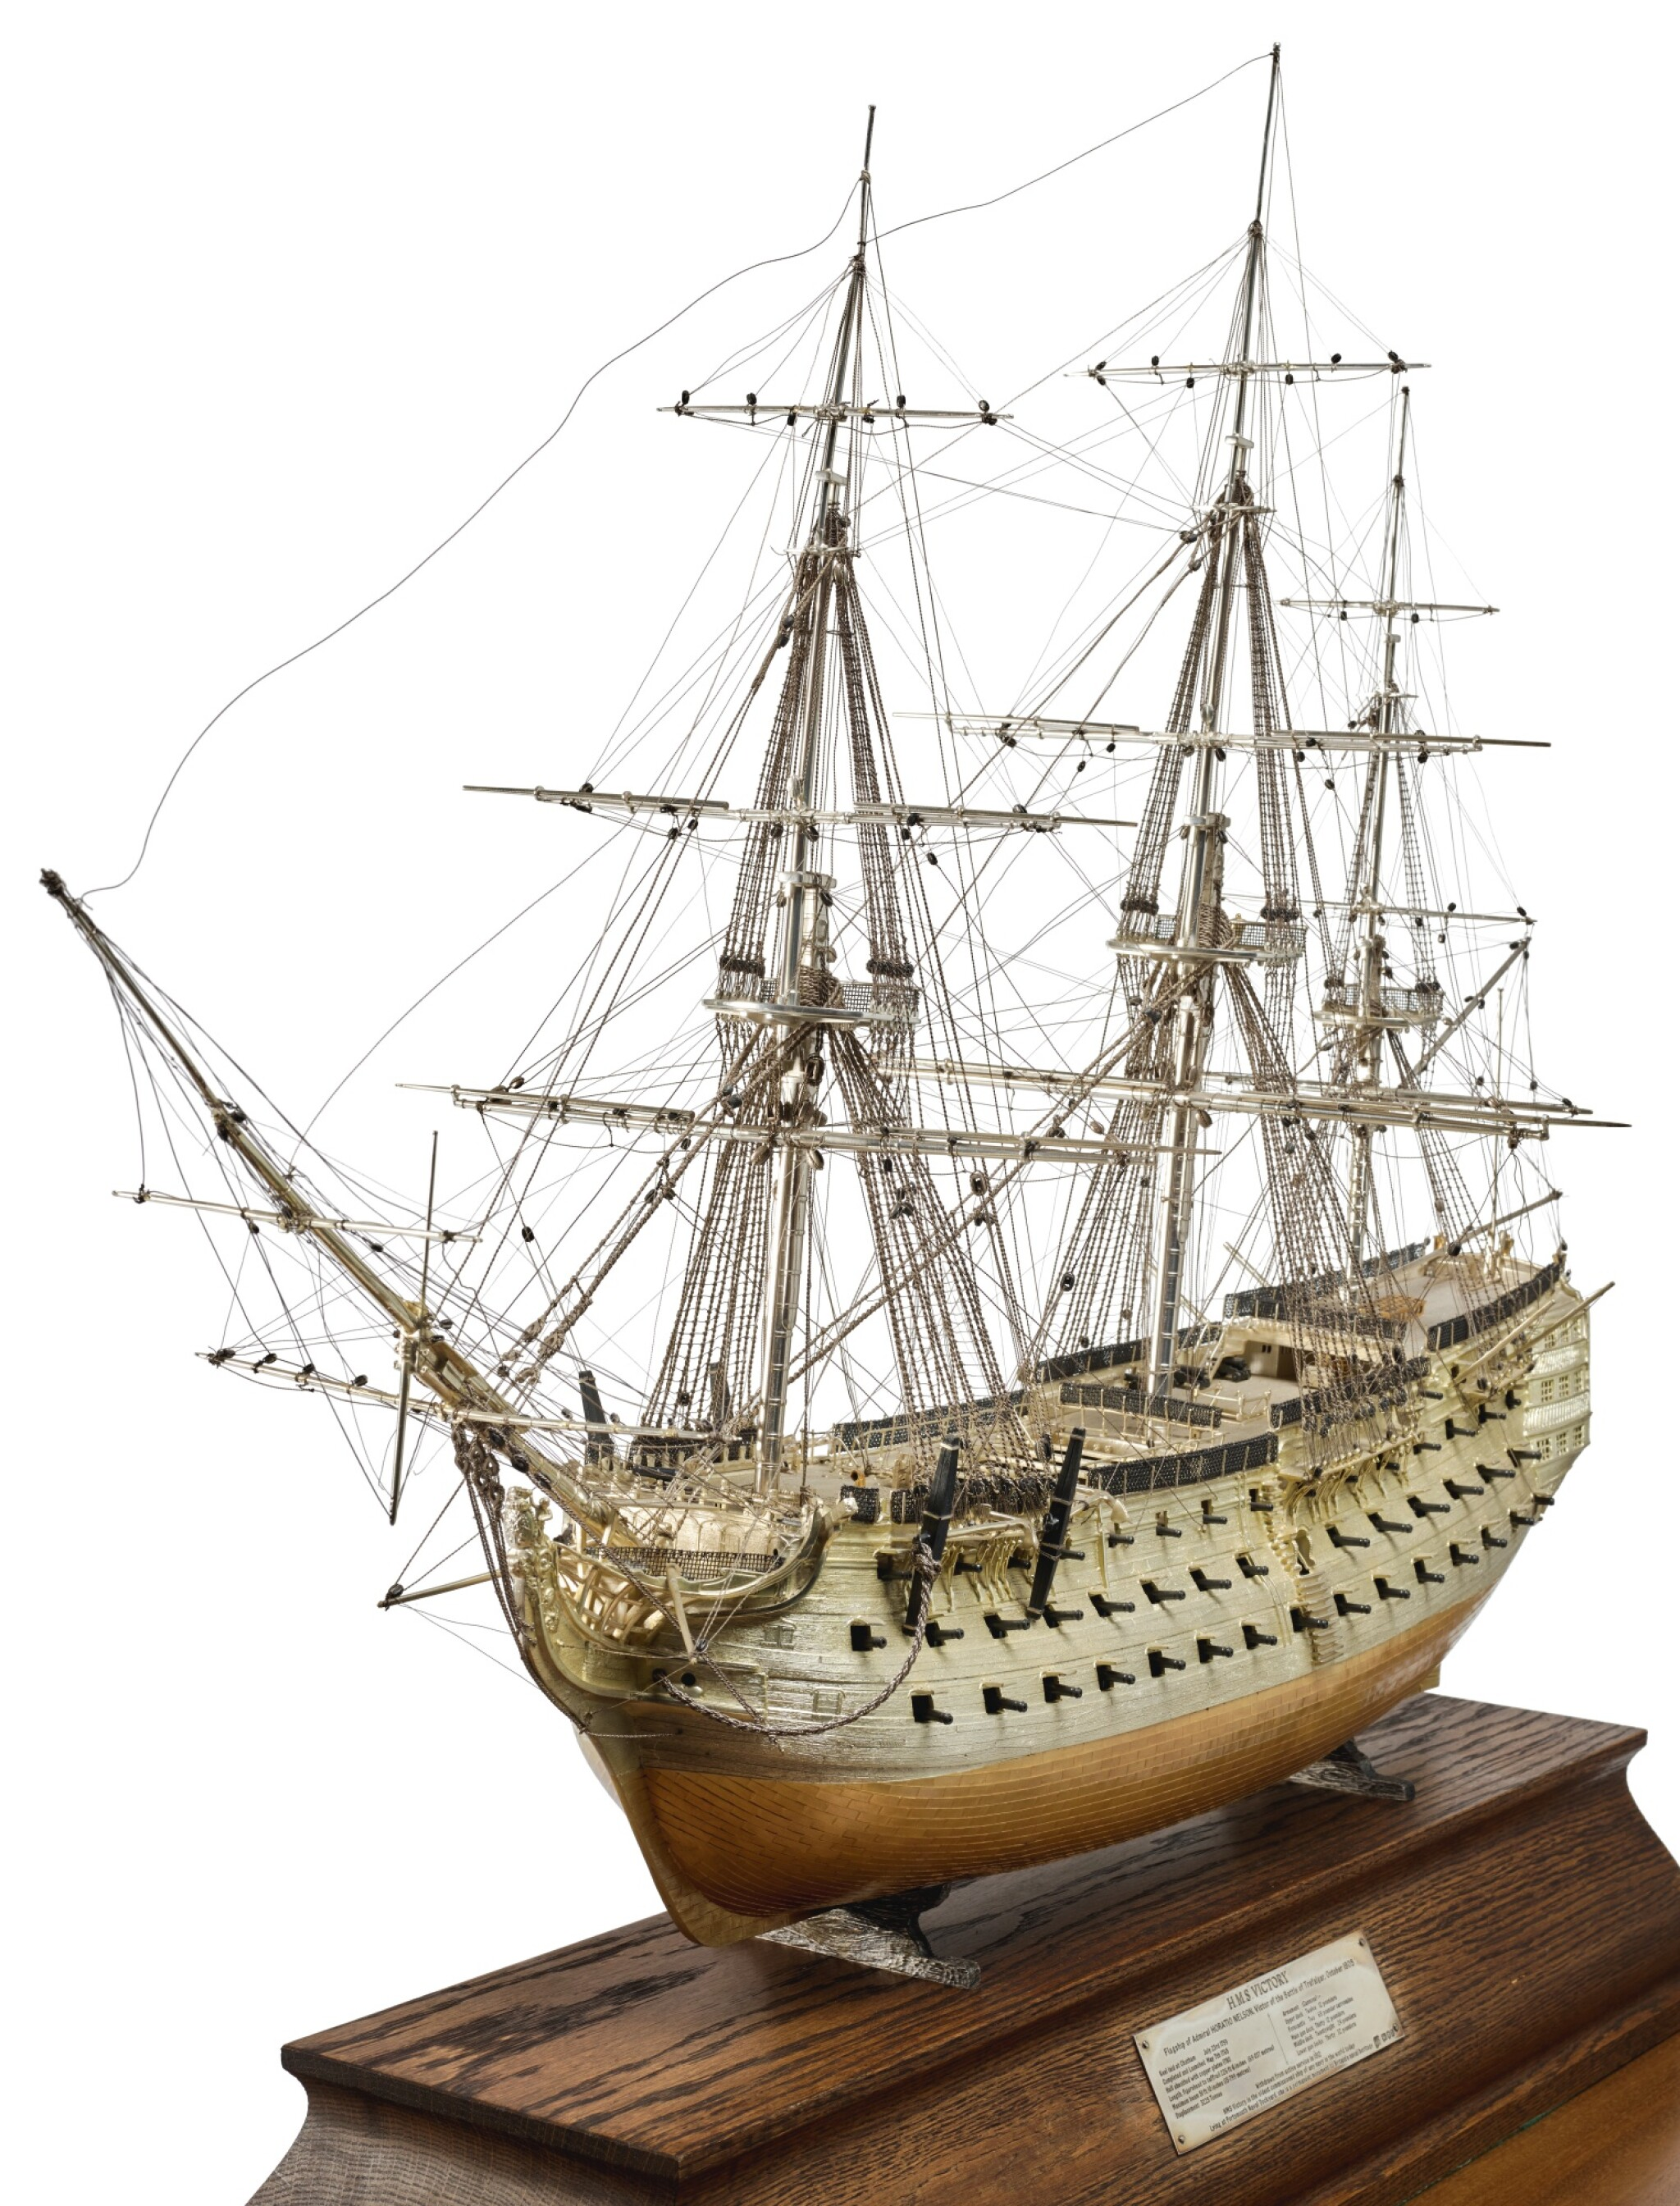 View full screen - View 1 of Lot 151. A FINE ELIZABETH II PARCEL-GILT SILVER SCALE MODEL OF THE H.M.S VICTORY, DAVID SHAW SILVERWARE LTD. FOR ASPREY & CO., LONDON, 1988.